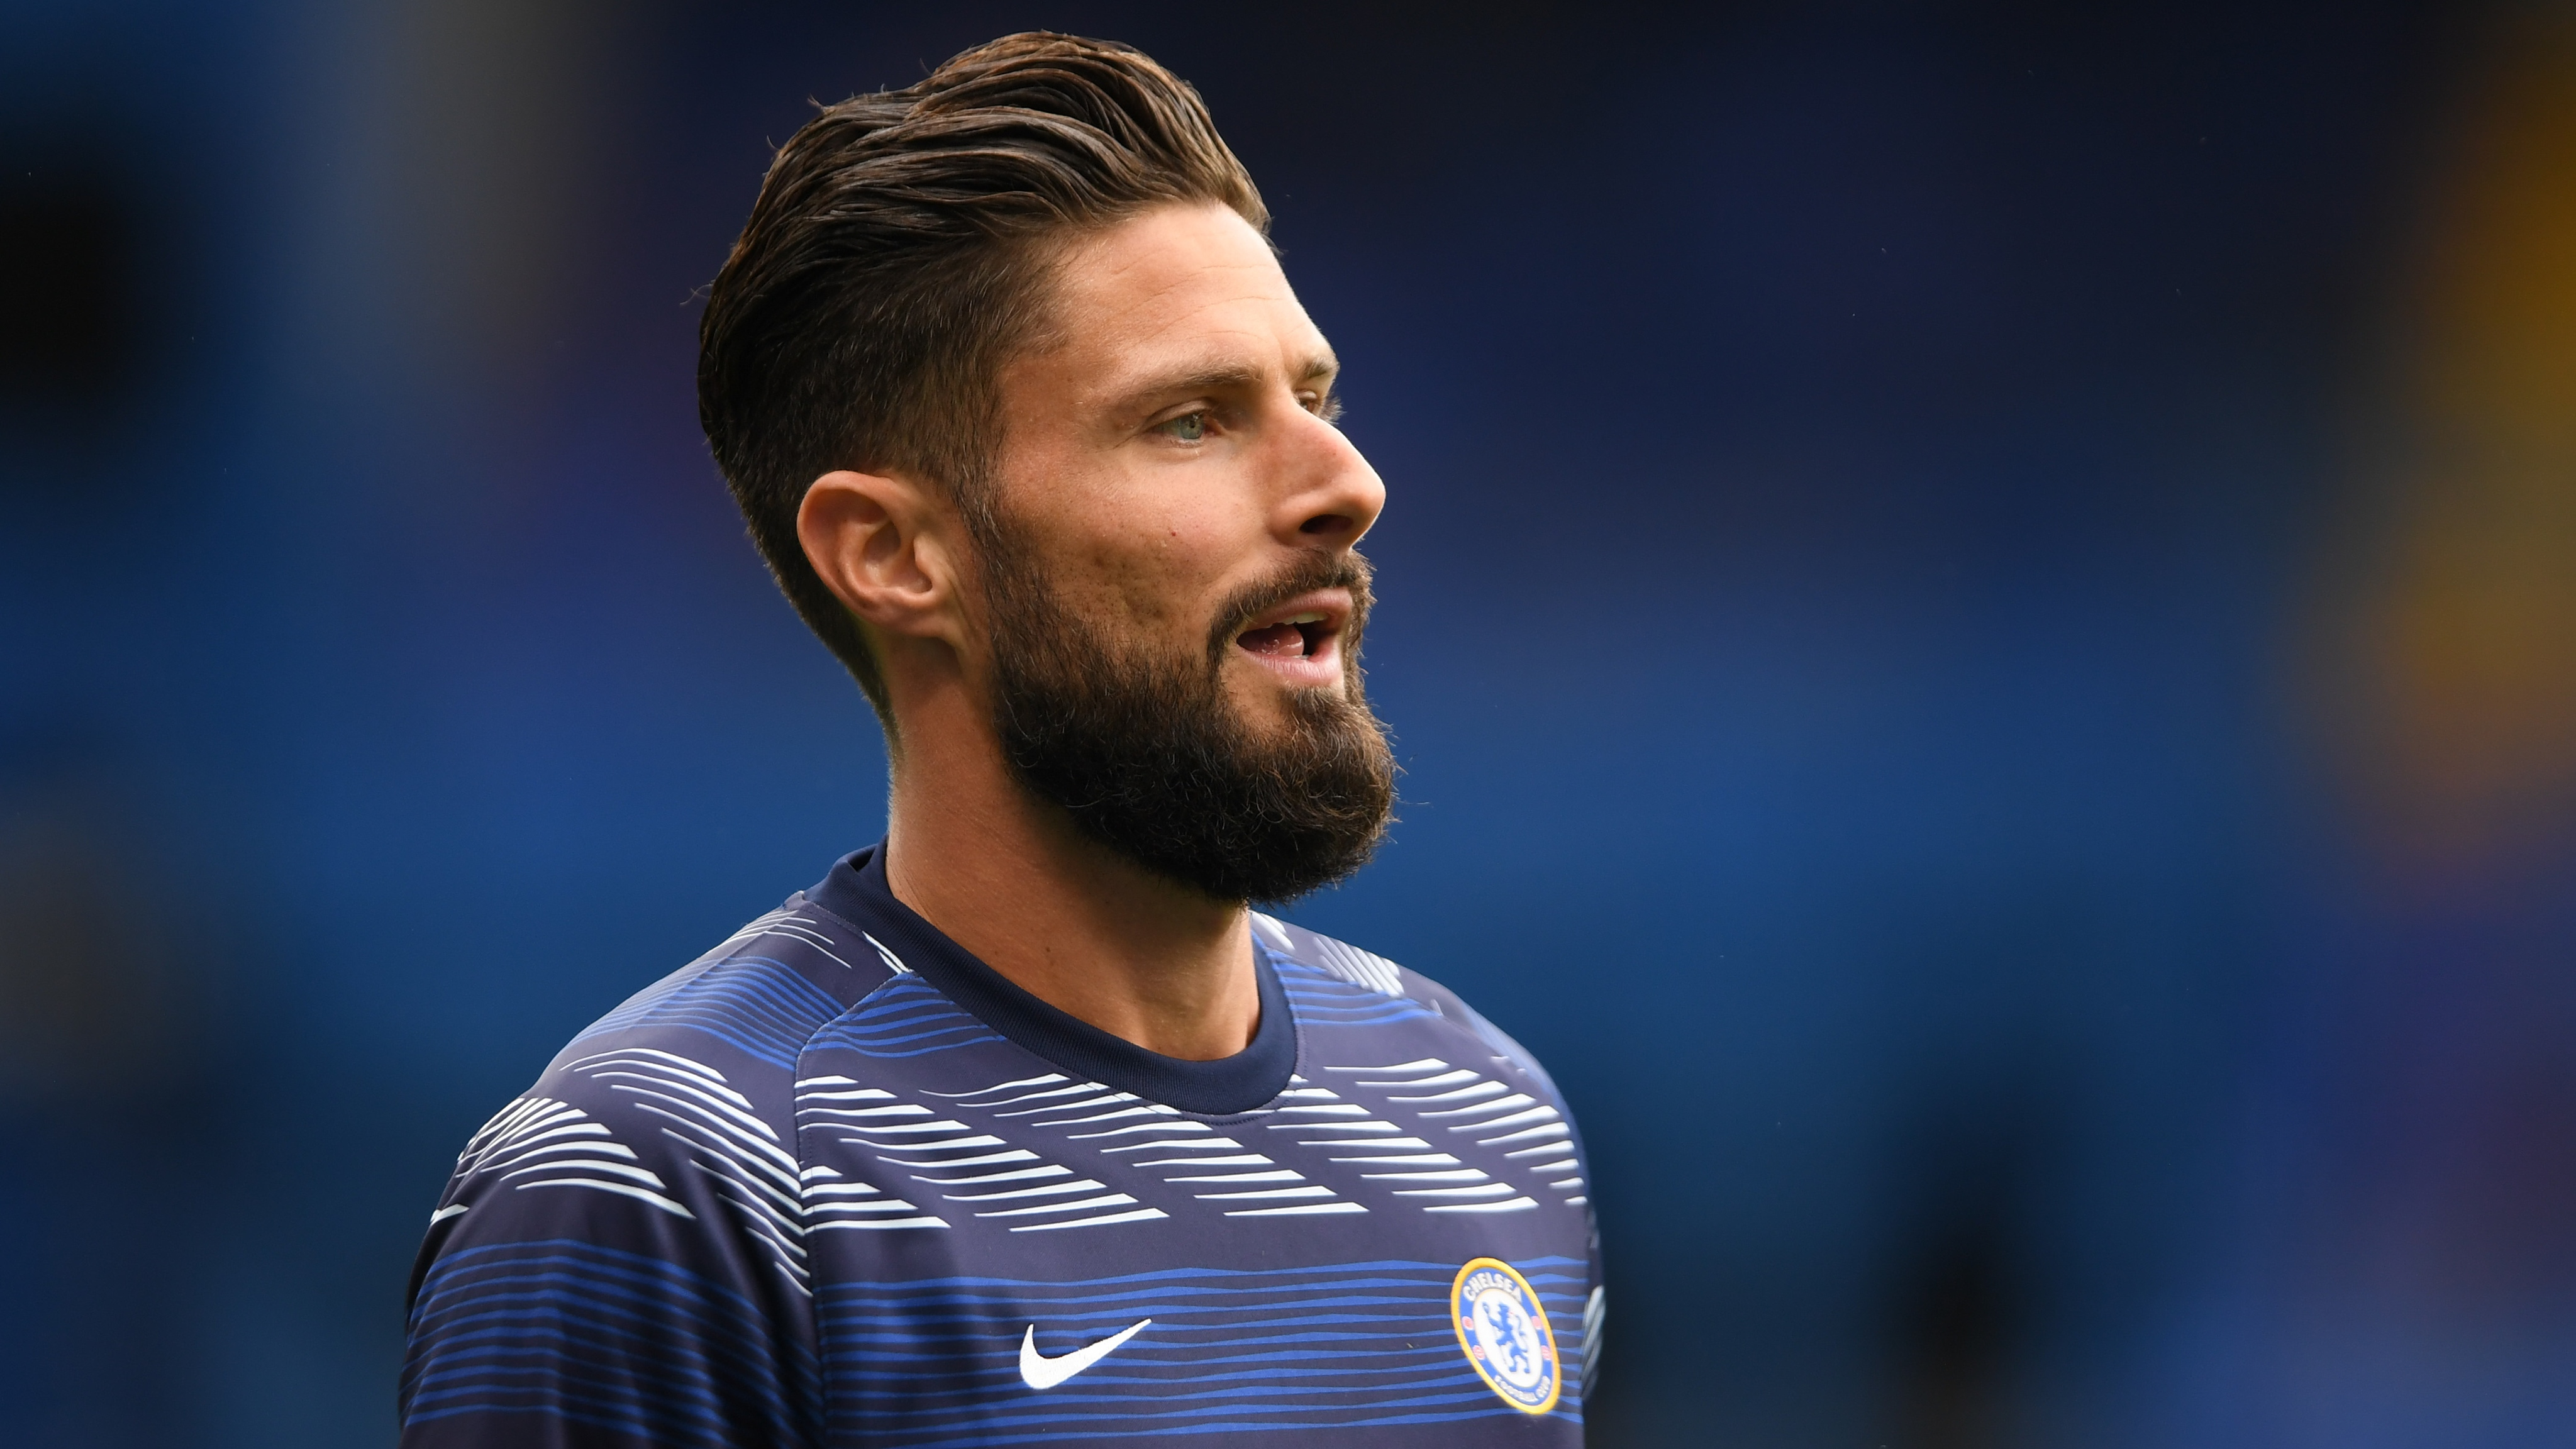 'He has total commitment' - Chelsea outcast Giroud praised as 'exceptional' by Rennes boss